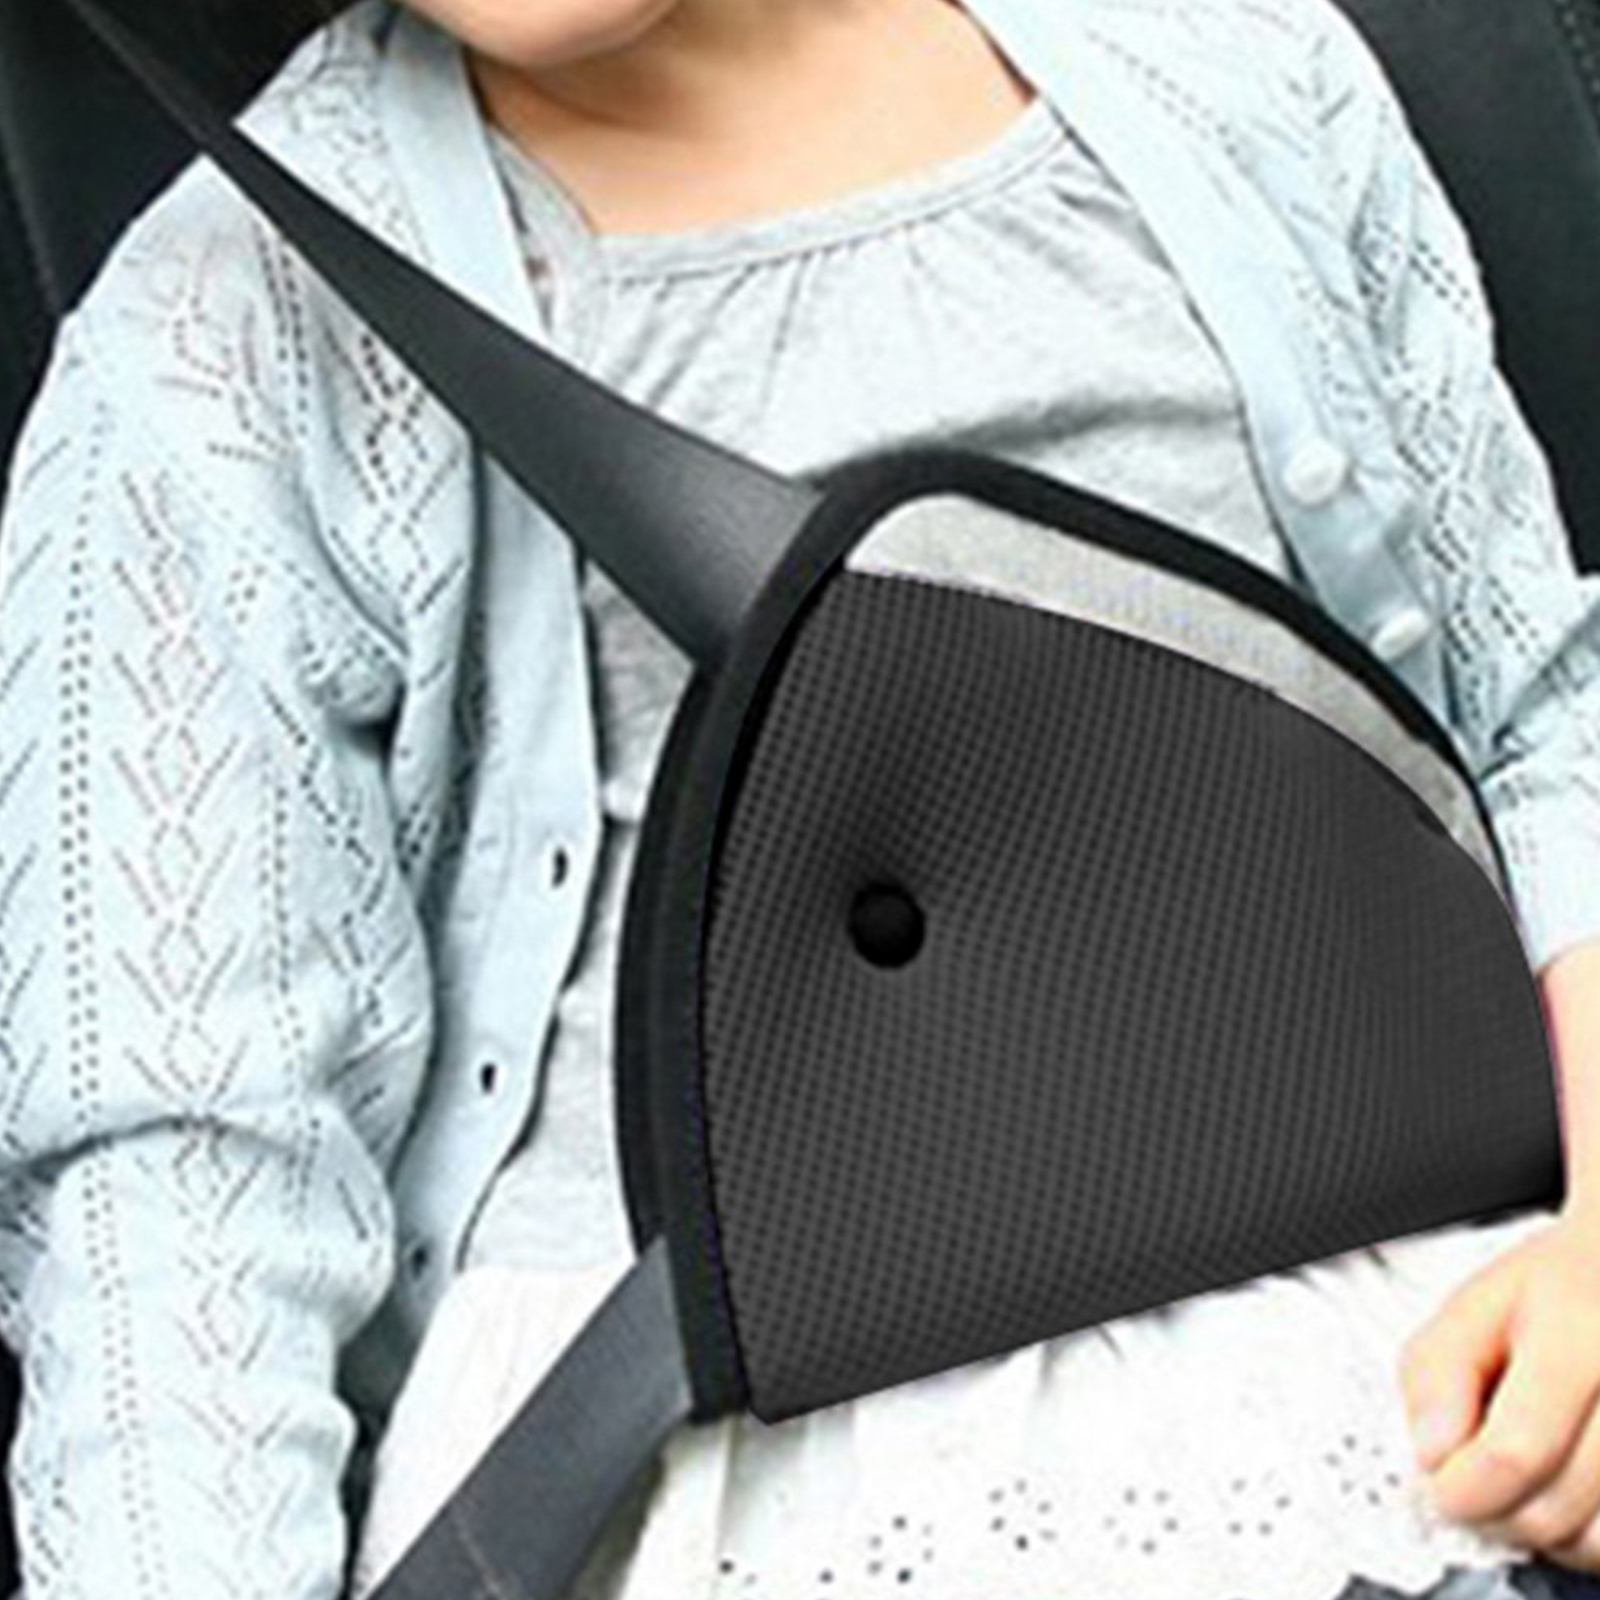 Children Kids Safety Triangle Car Seat Belts Fixator Adjuster Protect Shoulder Head Protection Cover Strap Grey